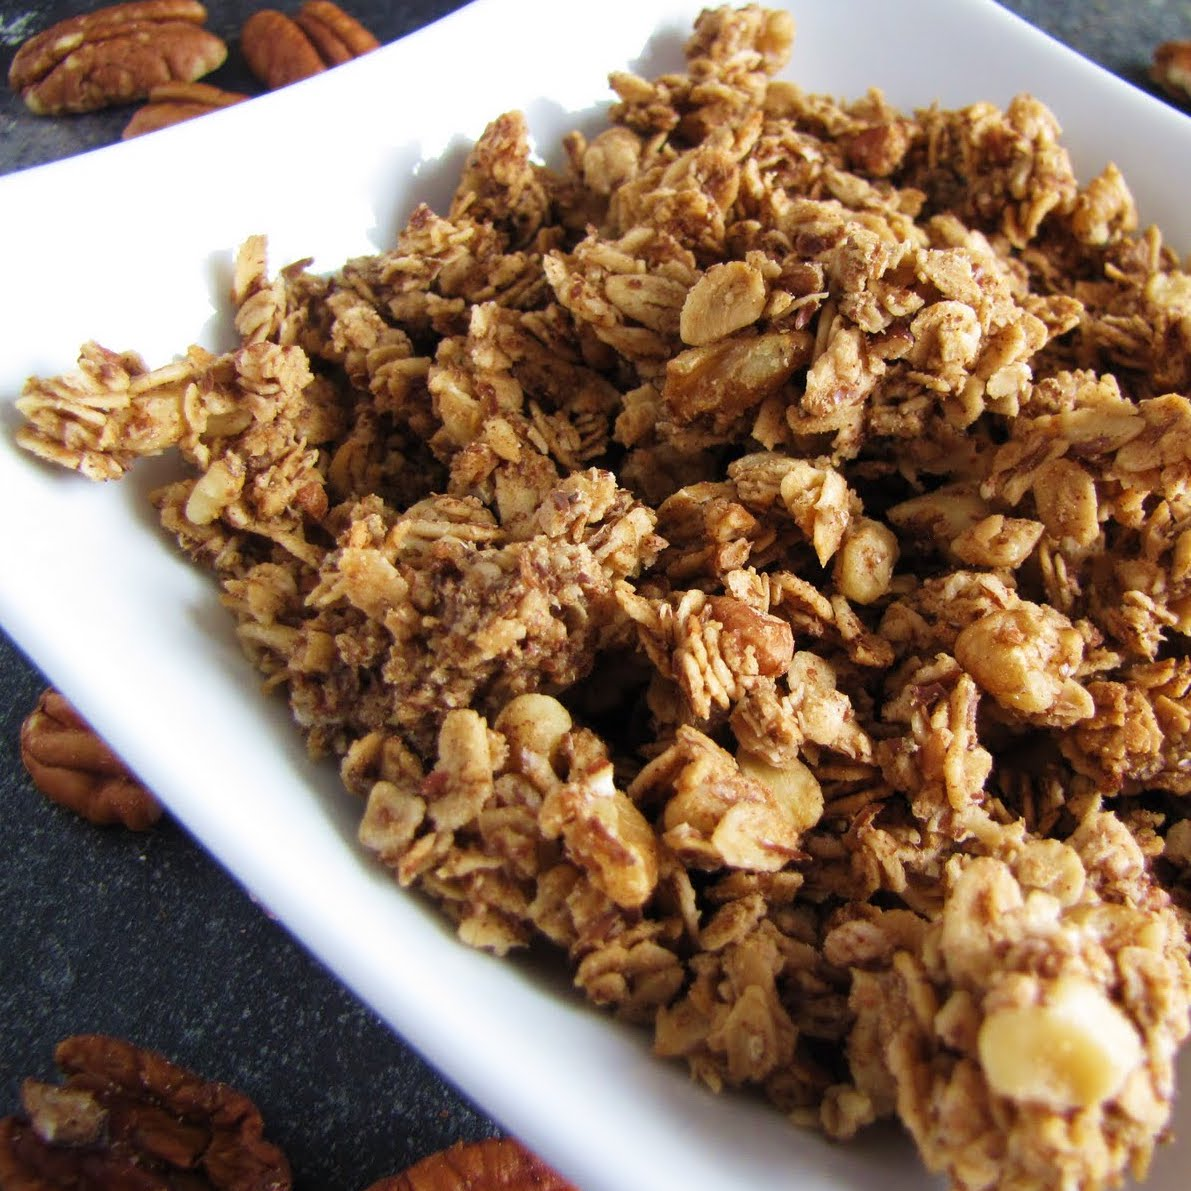 A square white bowl filled with homemade granola